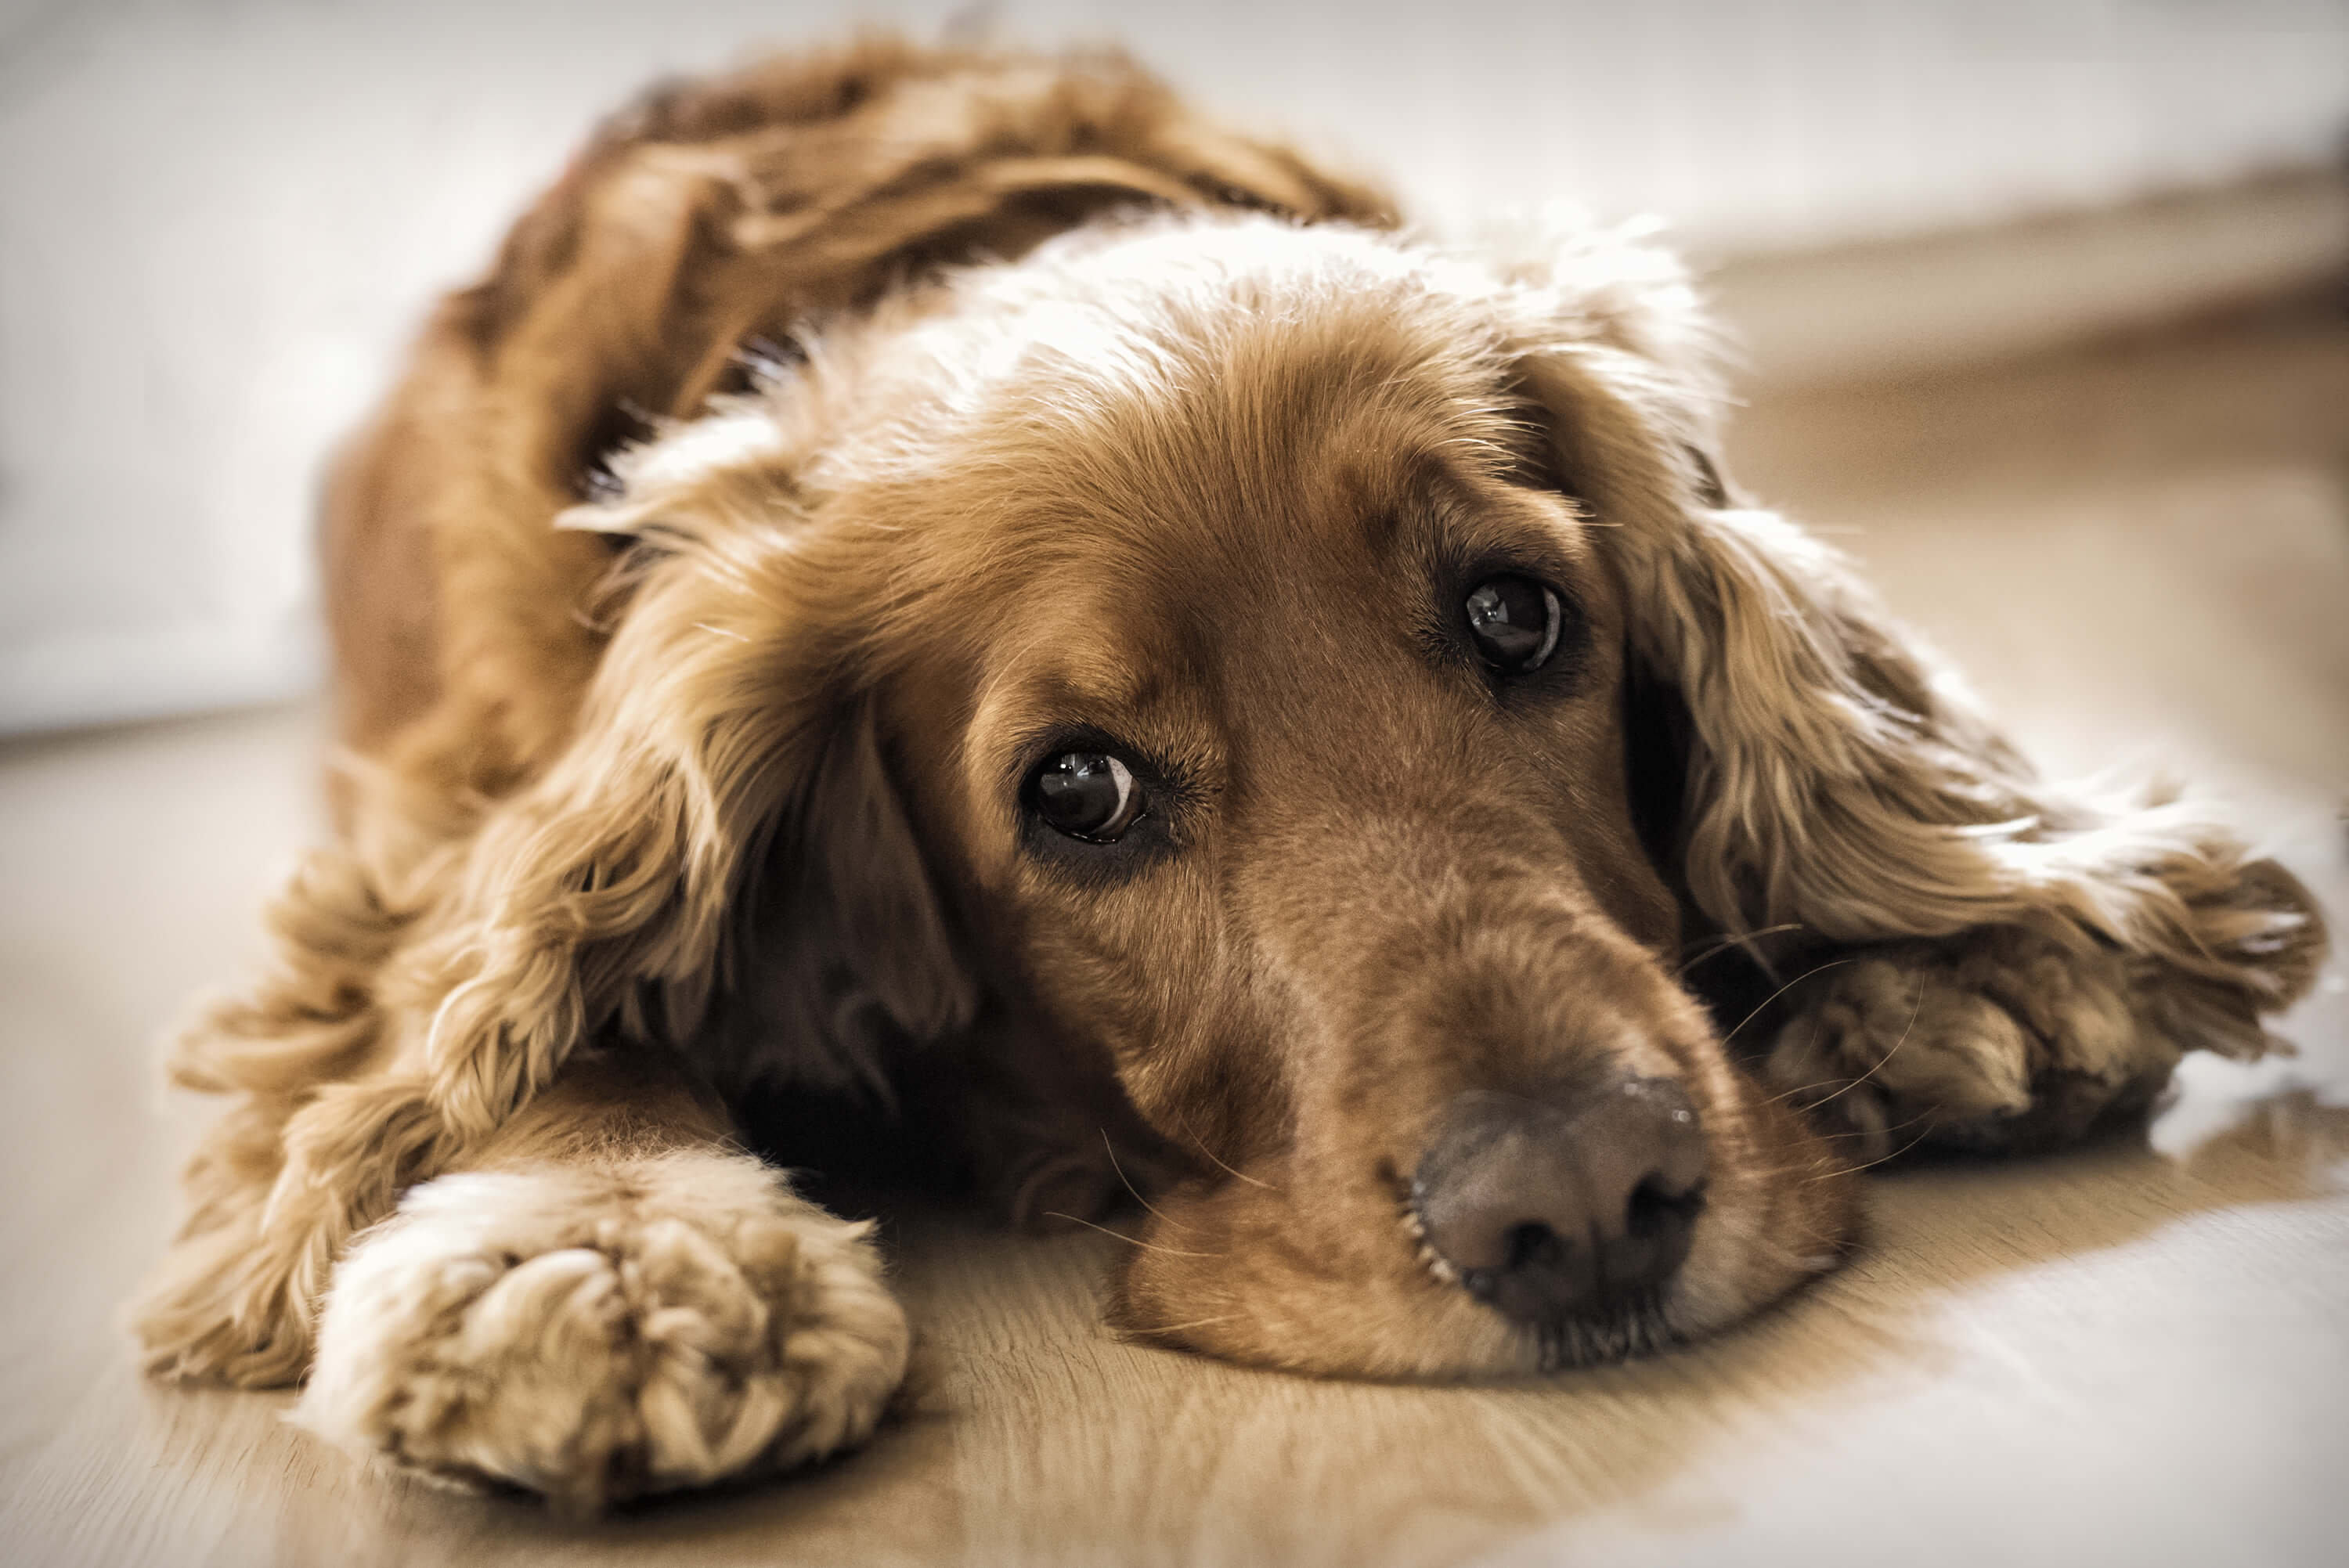 Brown retriever type dog laying down on the floor